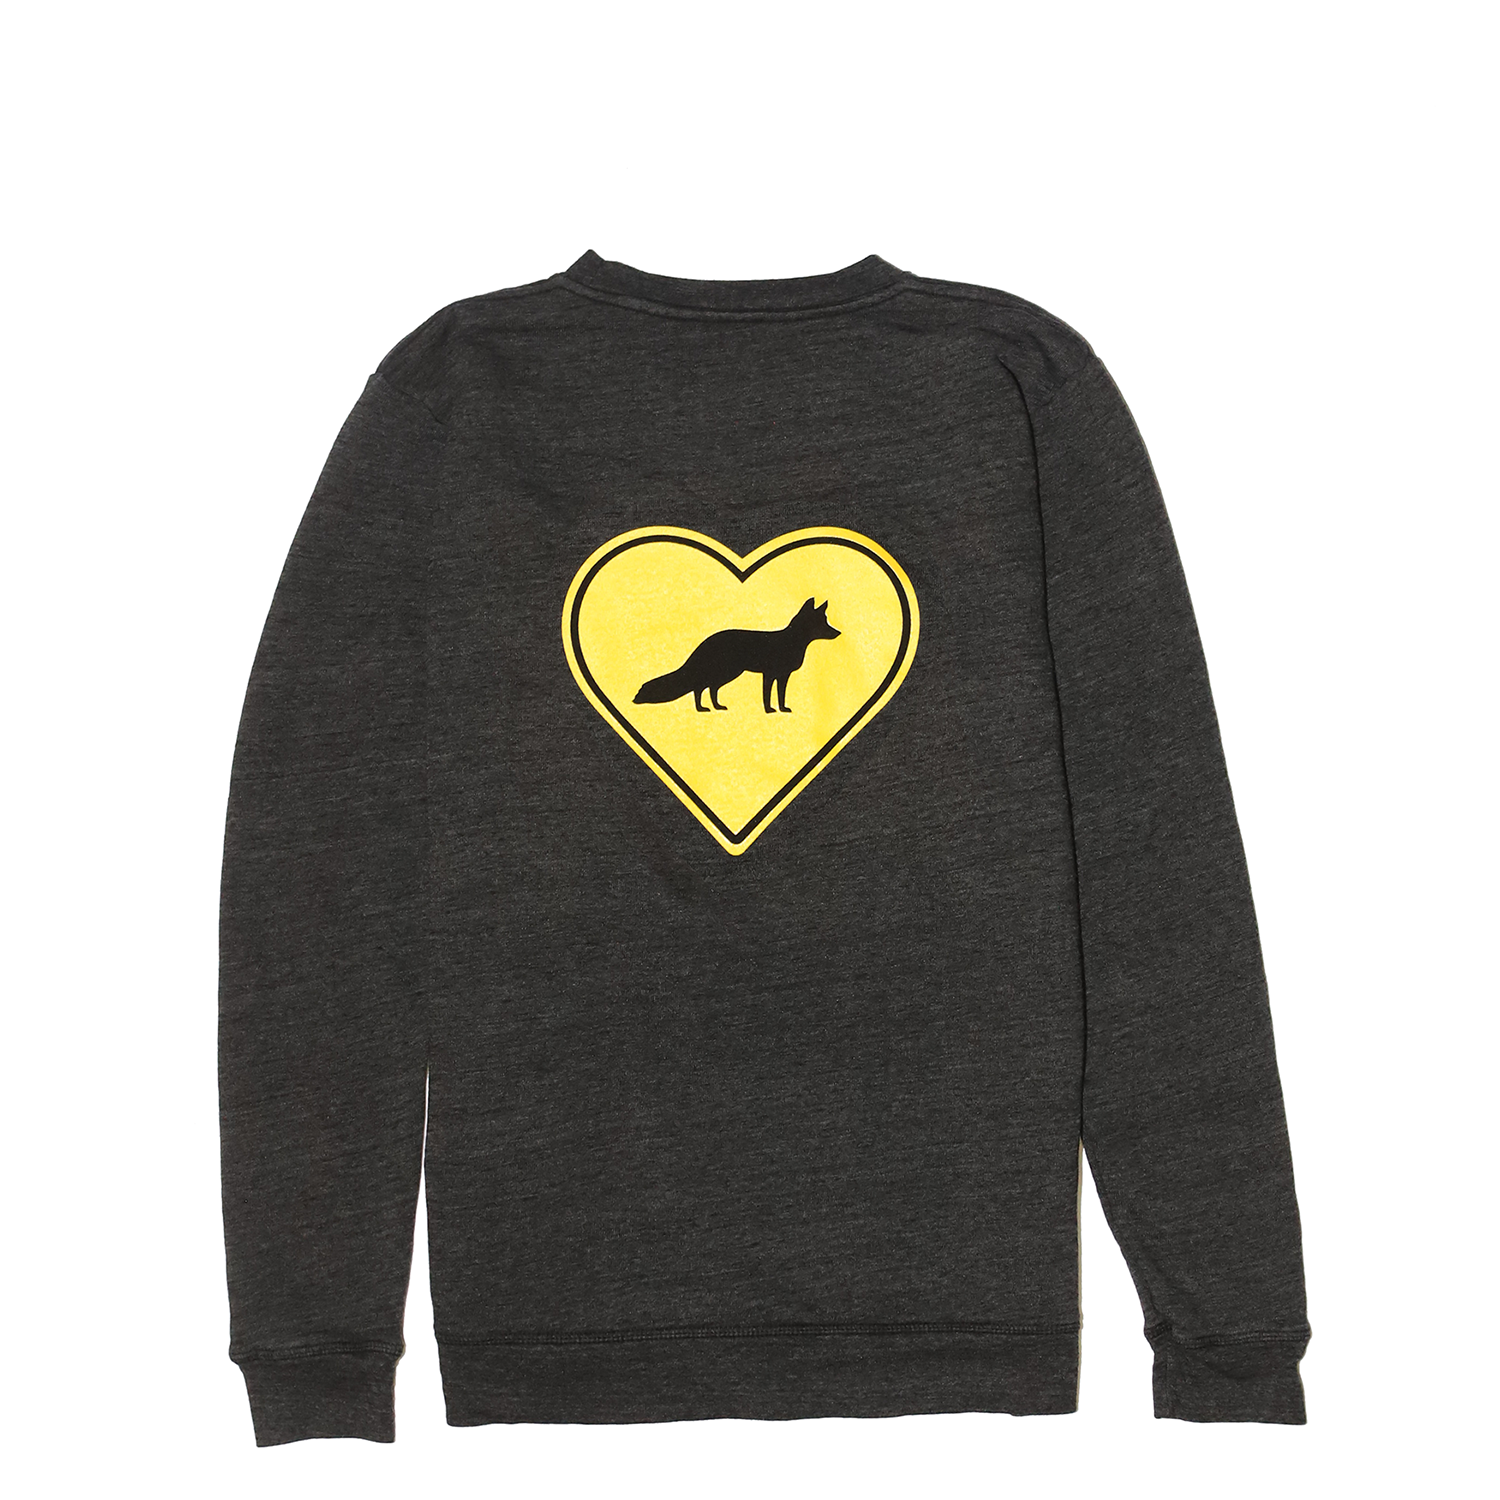 products/13-GREY-CREW-BACK-fox.png